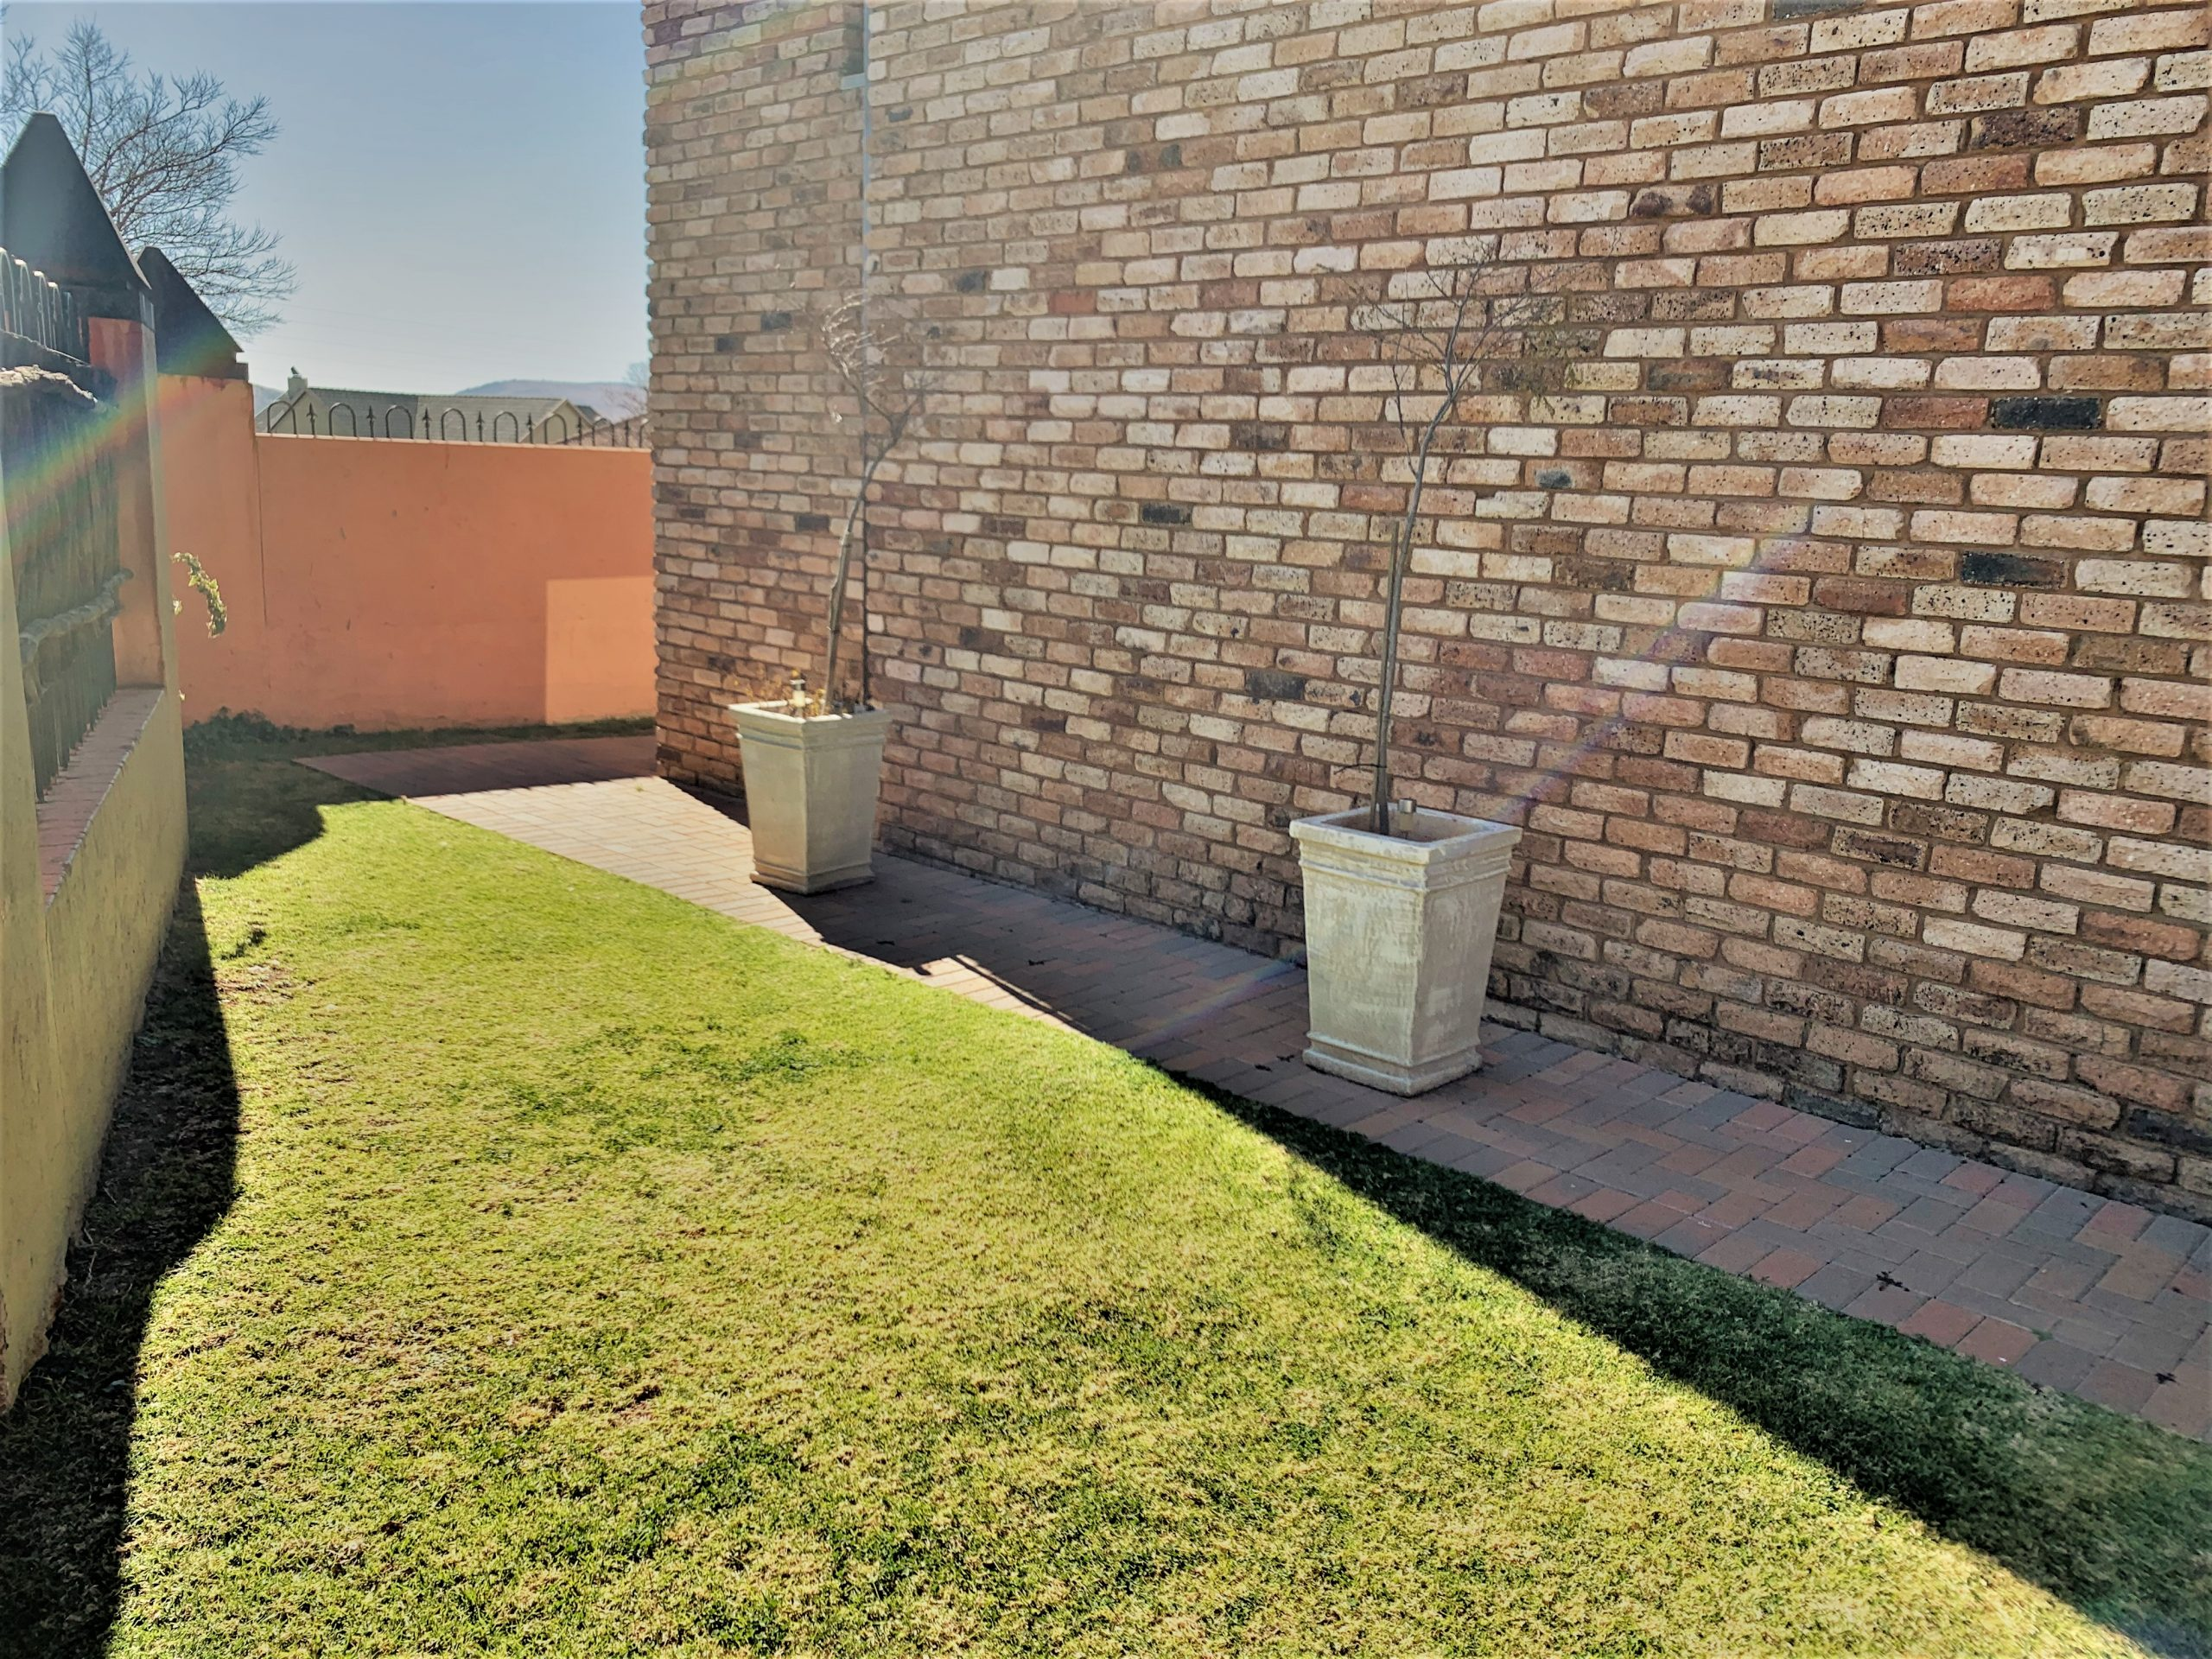 3 Bedroom House in Safe Complex for SALE